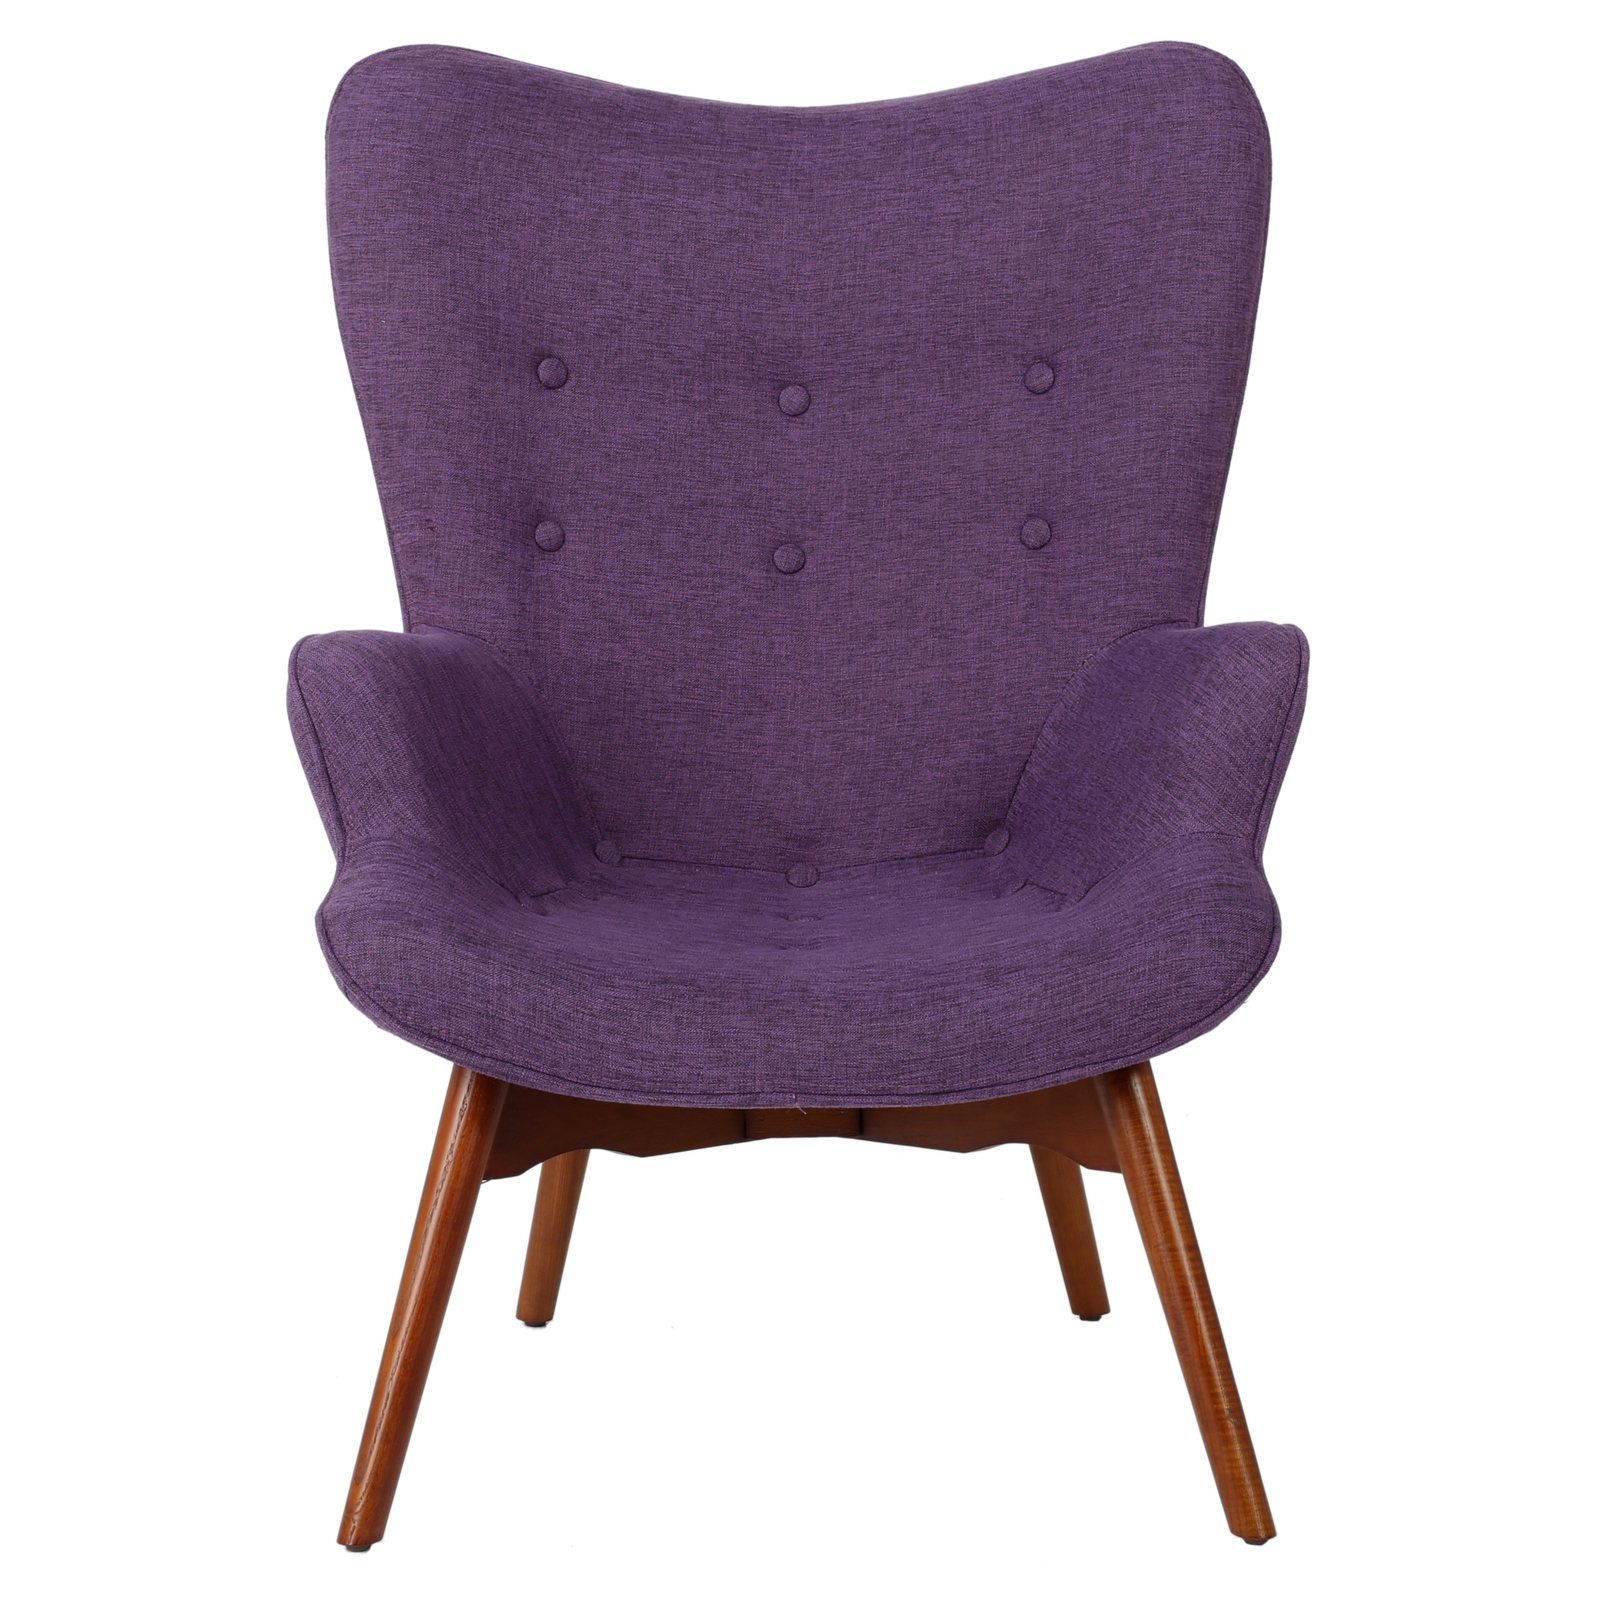 Excellent Accent Chair Purple Style